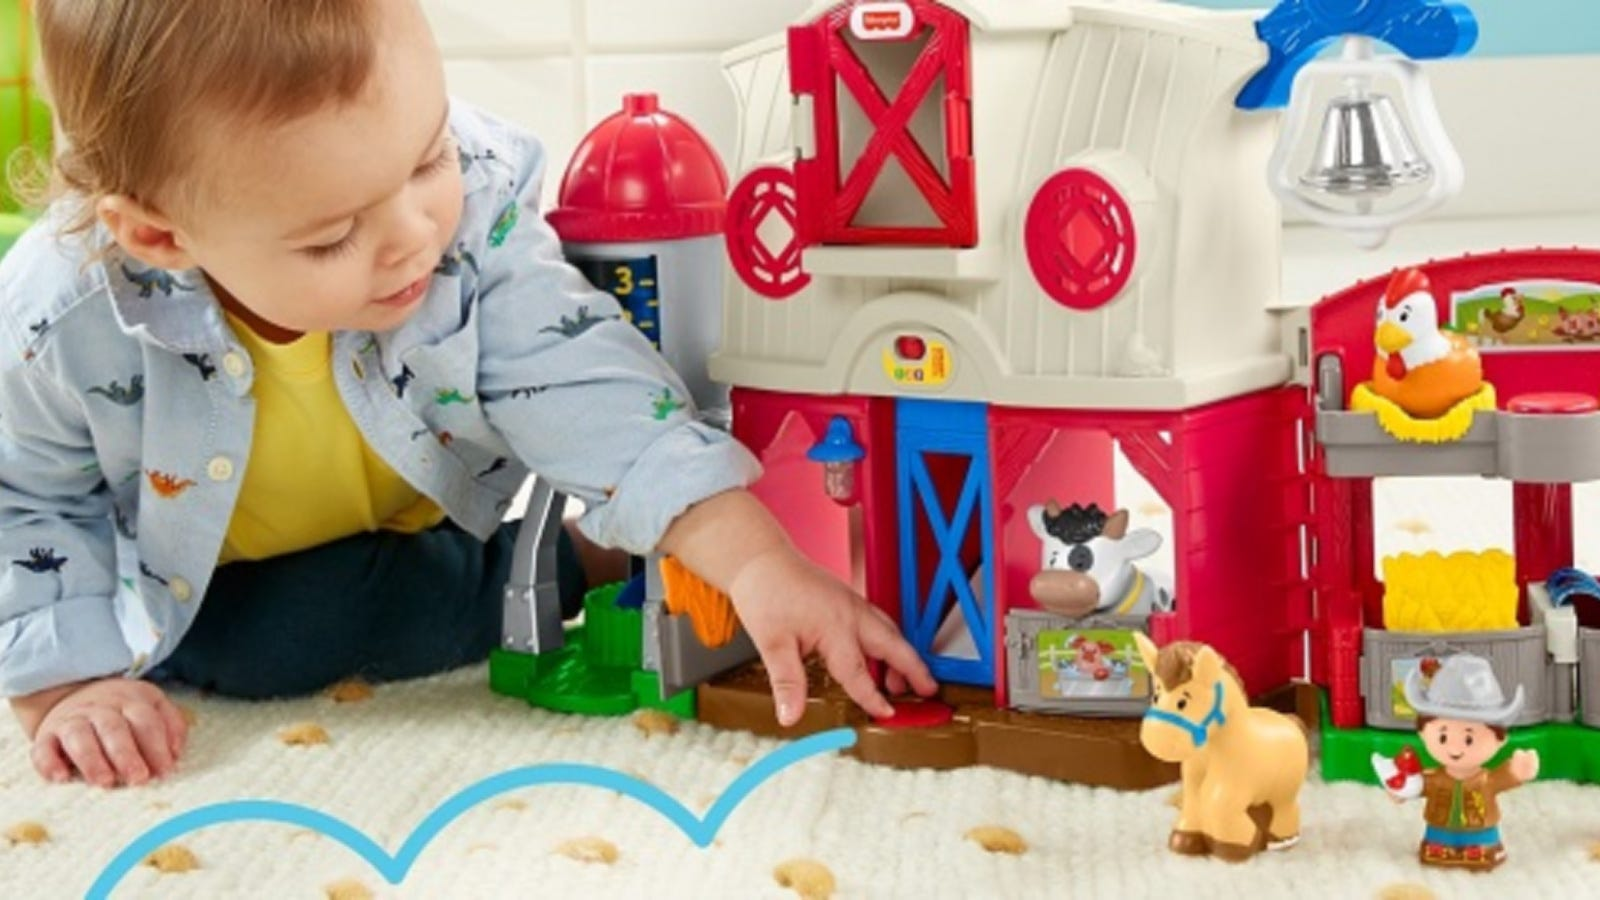 A young toddler playing with a Fisher Price barn set with farm animals.